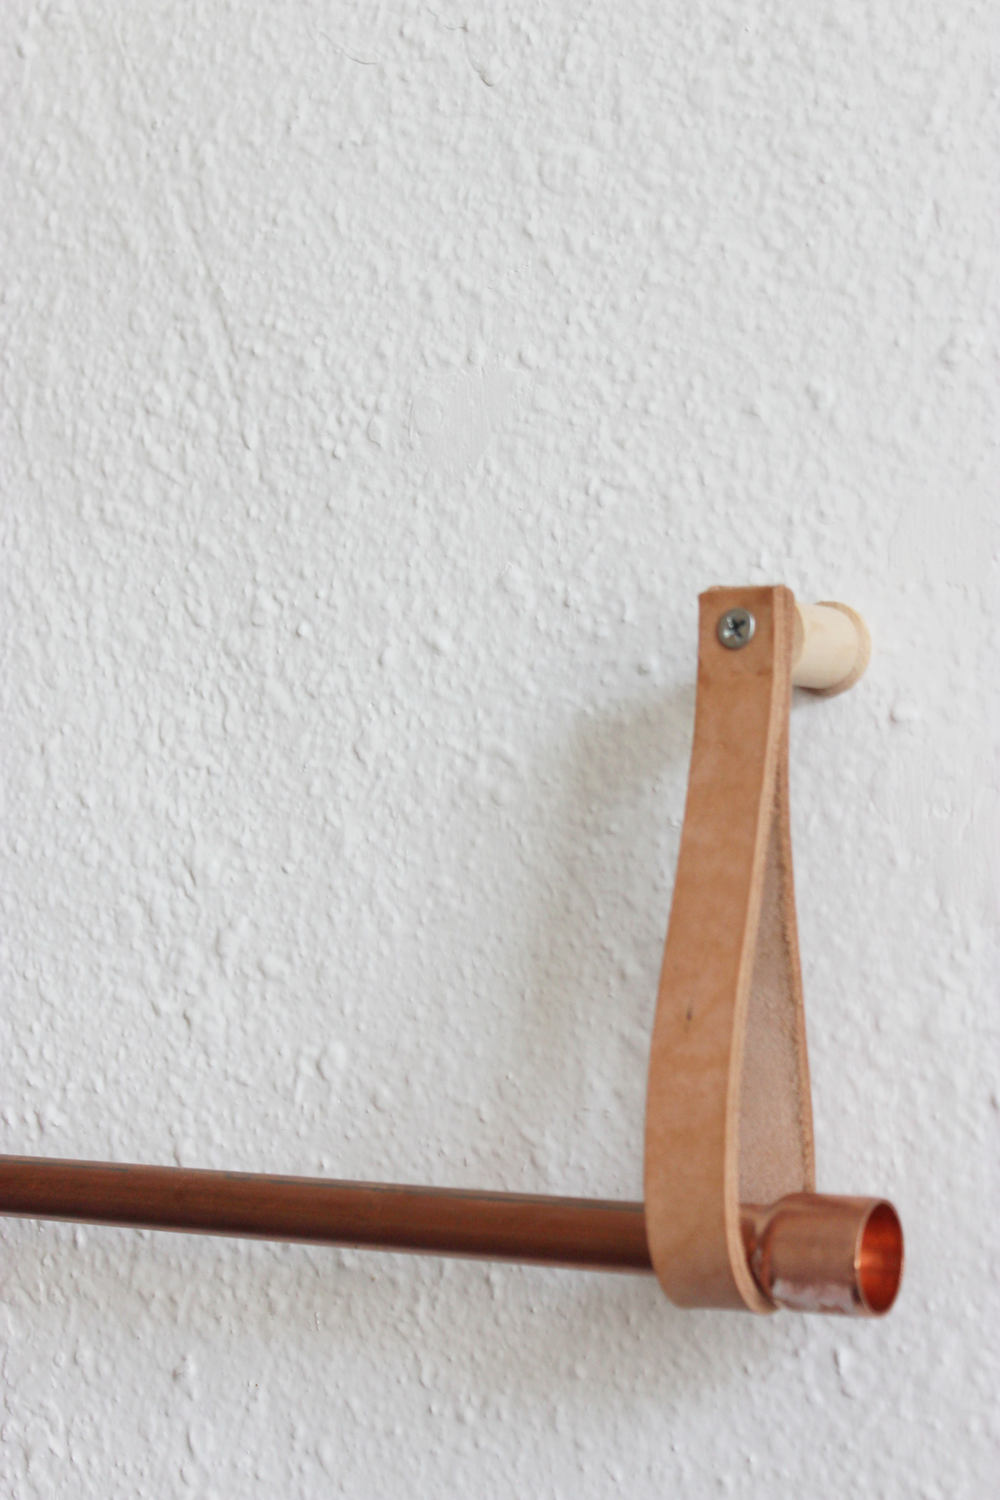 DIY Copper Leather Hanging Clothing Rack hometohem.com 2016_3